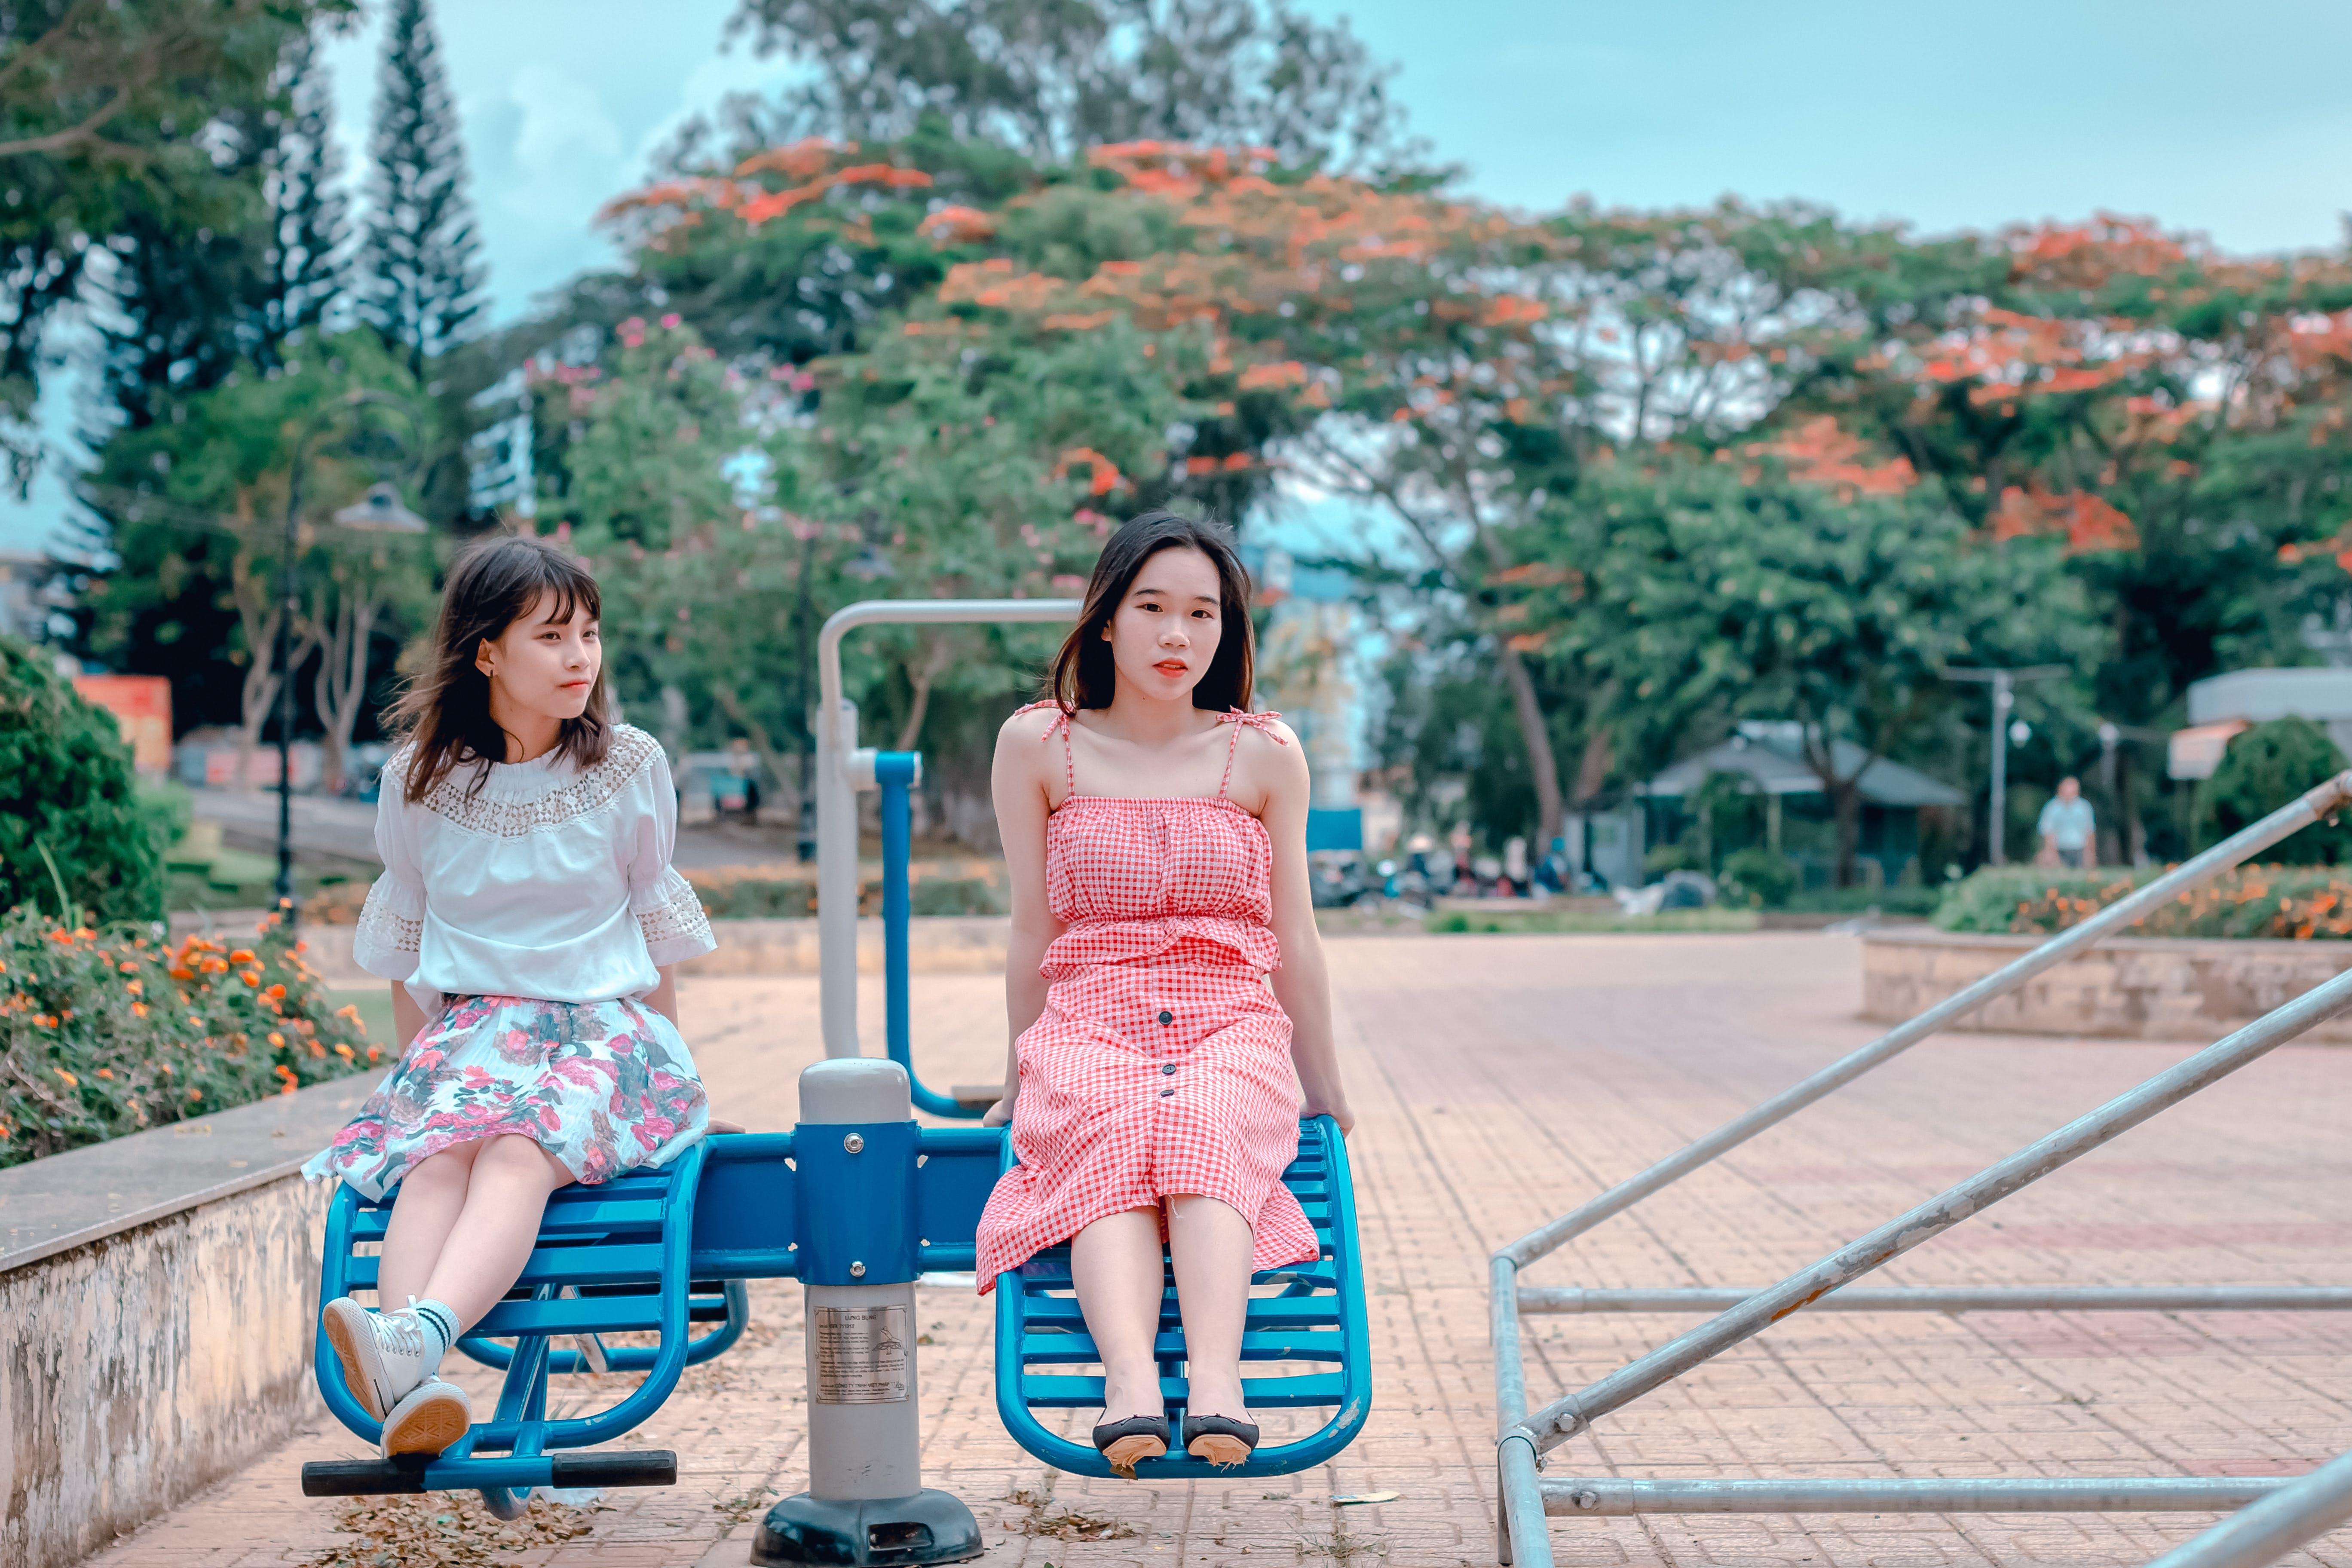 Two Woman Sitting at Park Ride